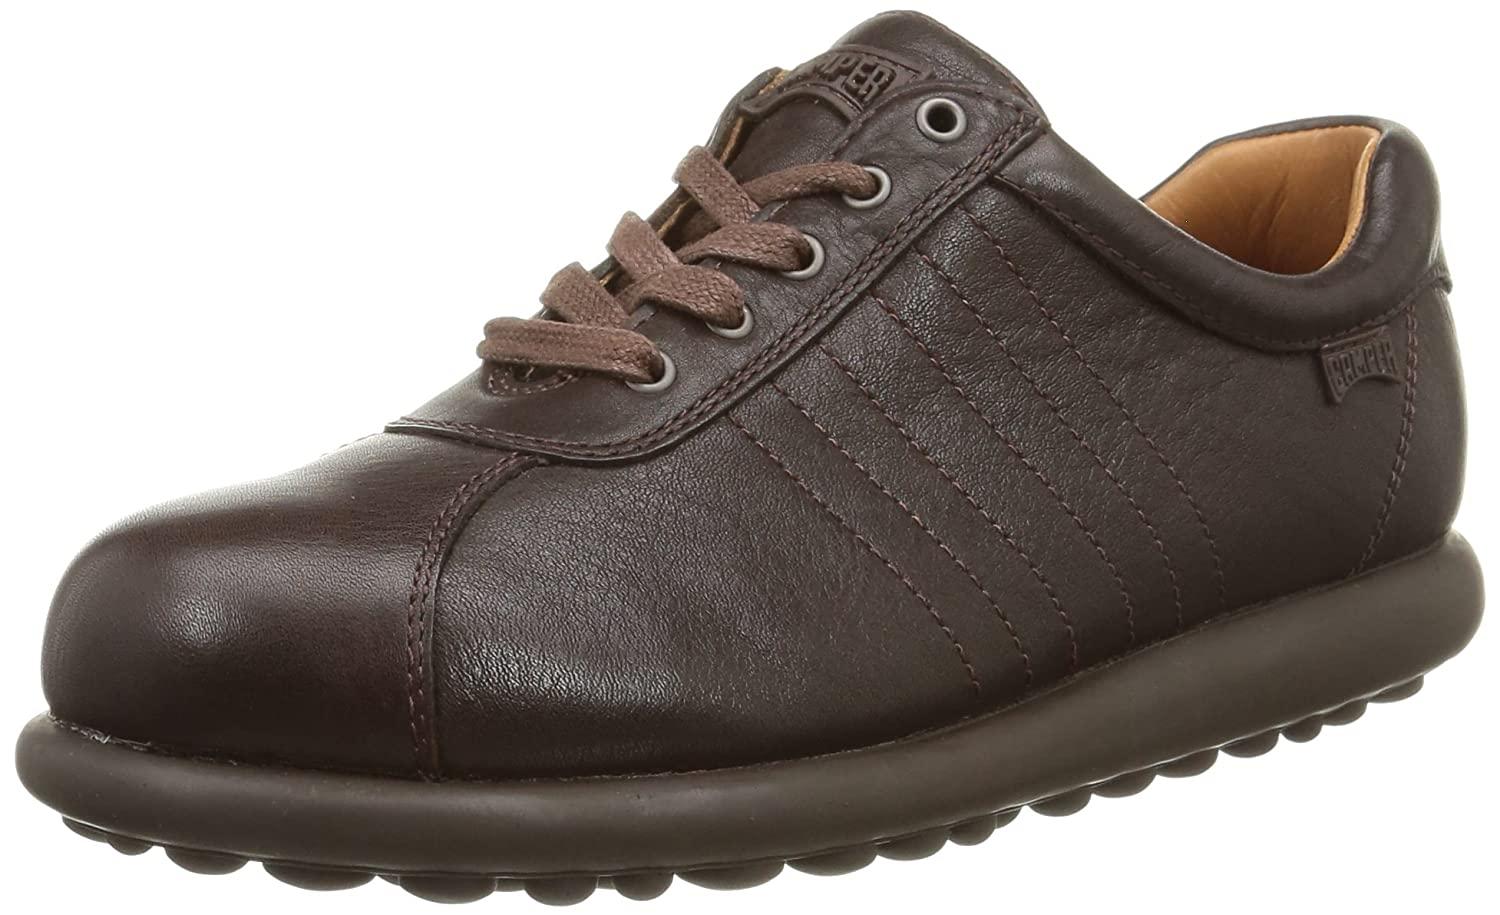 Camper Pelotas Ariel, Femme Sneakers Basses Femme Ariel, Marron B074P6S79H (Dark Brown) fdec991 - automatisms.space